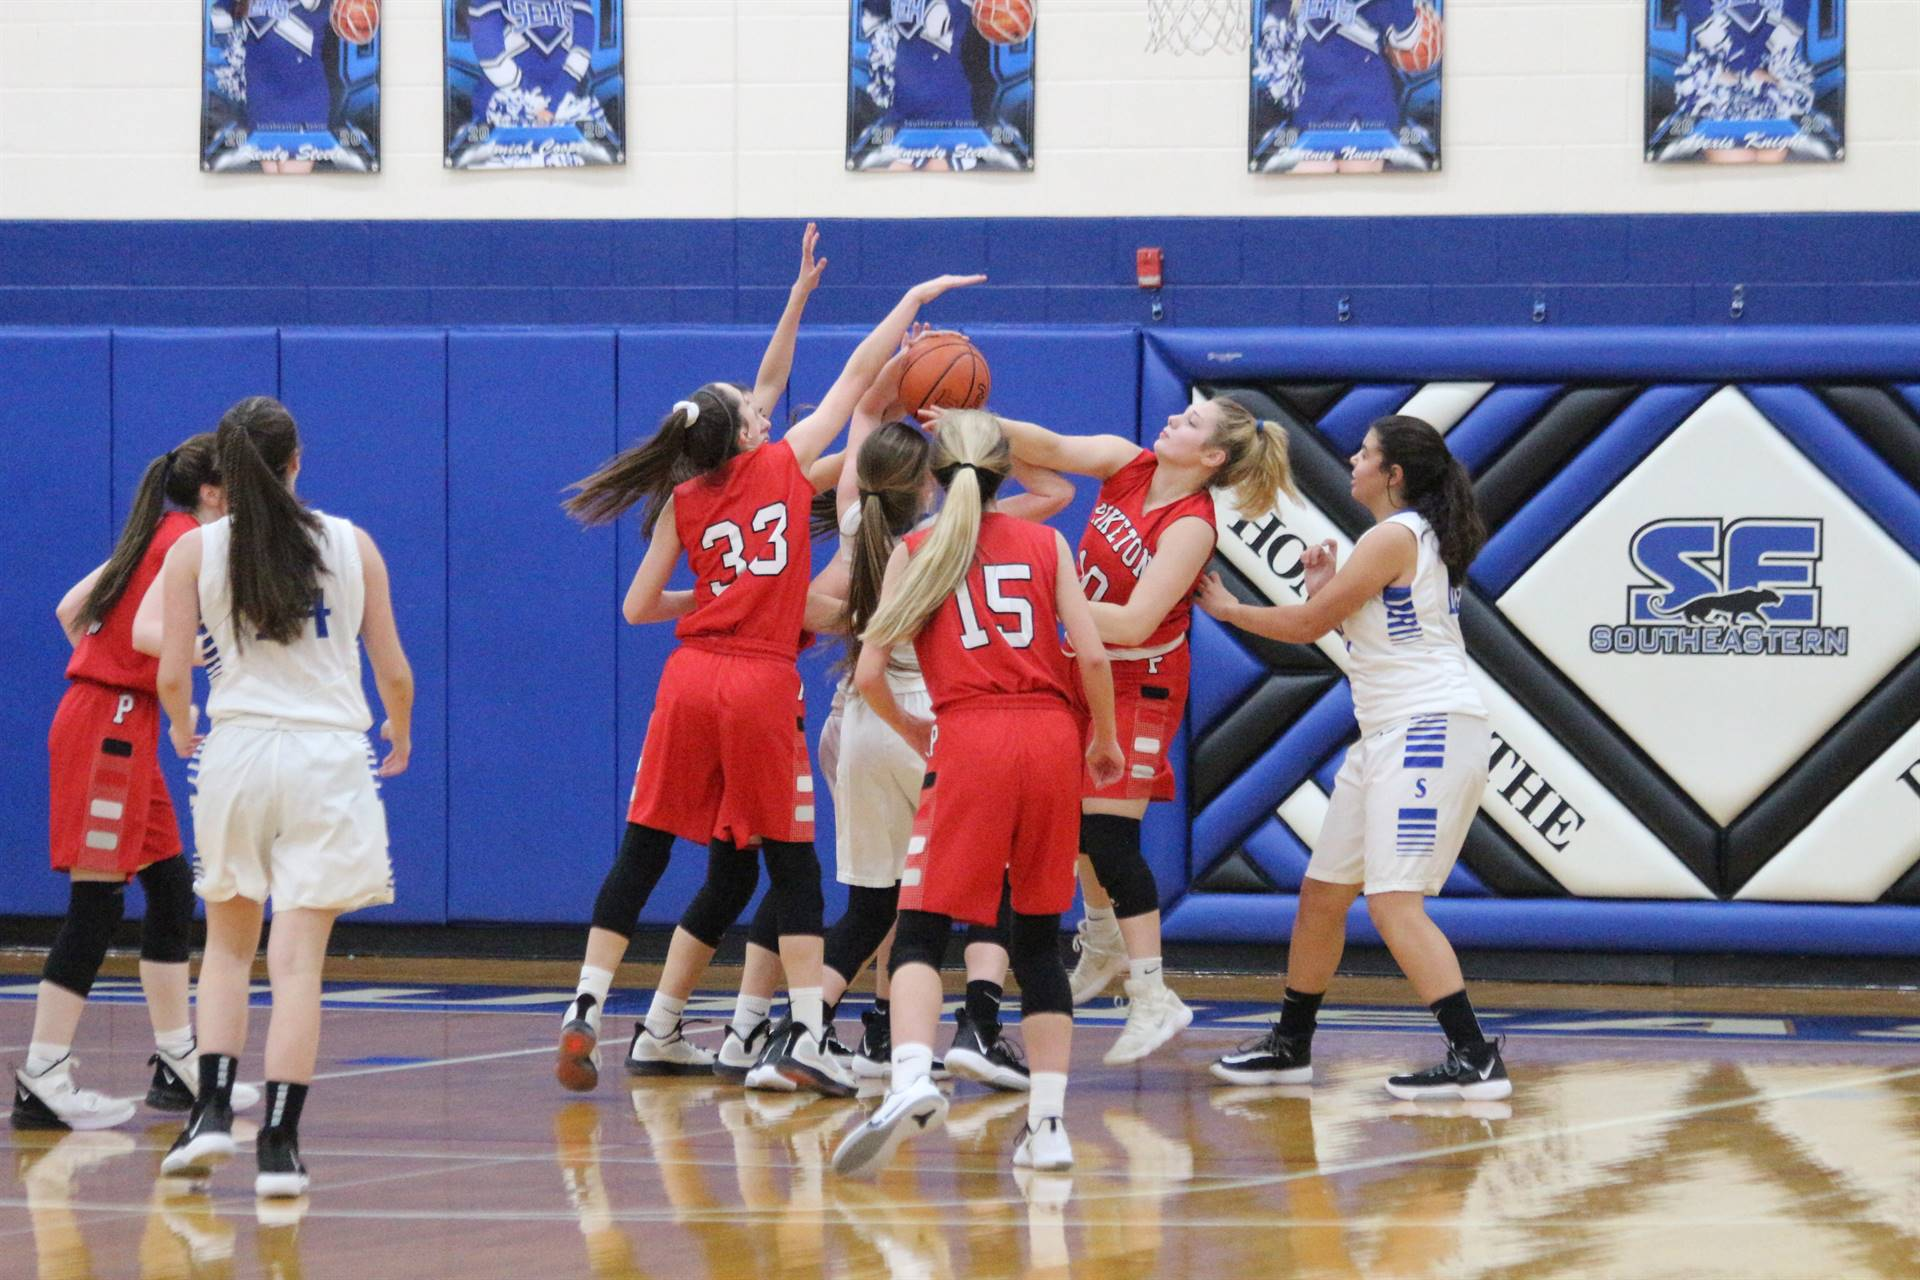 SE Girls Basketball vs Piketon 2